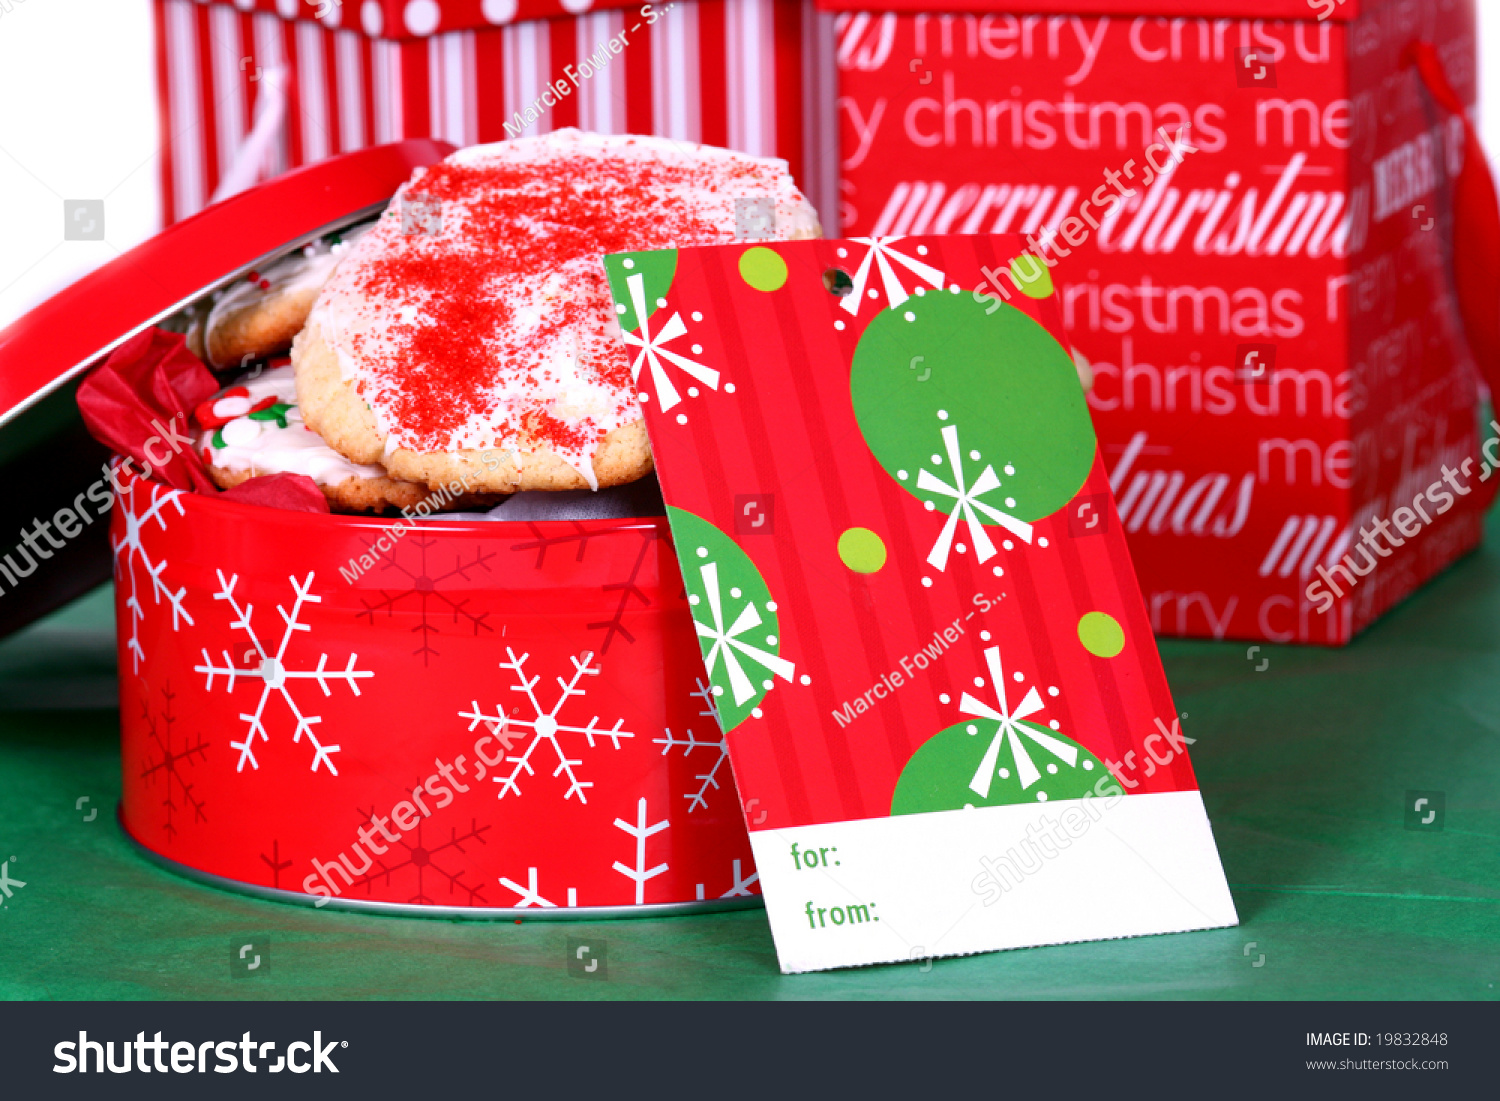 Time Full Christmas Cookies Gift Tag Stock Photo (Edit Now) 19832848 ...